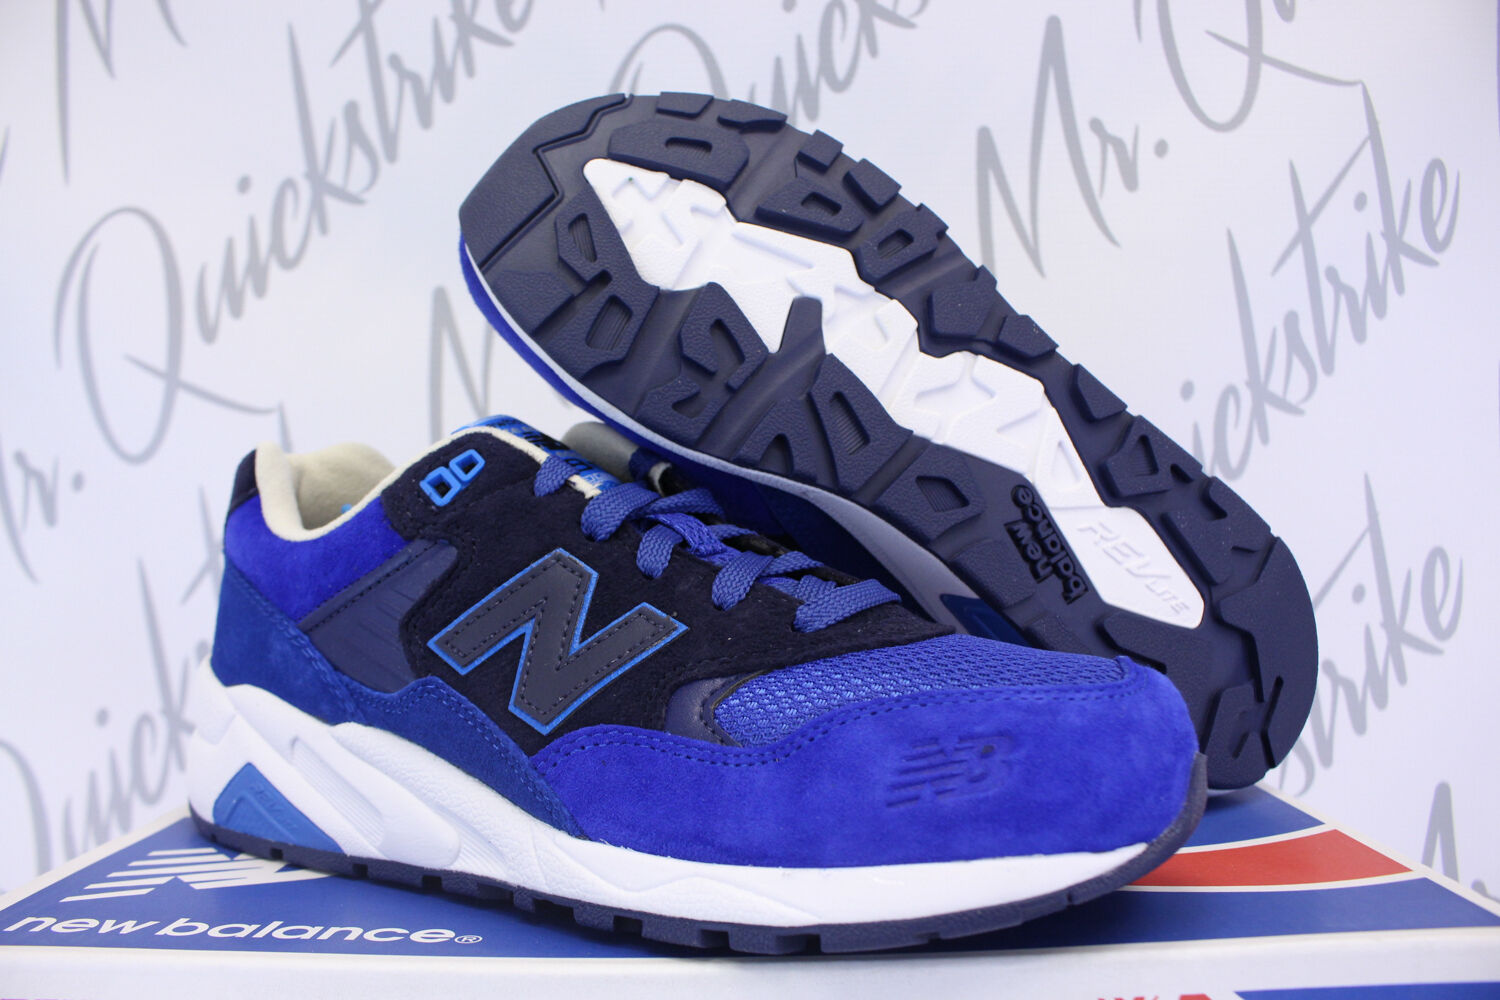 NEW BALANCE 580 SZ 8 ELITE EDITION PAPER LIGHTS SAILOR PACIFIC BLUE MRT580RA